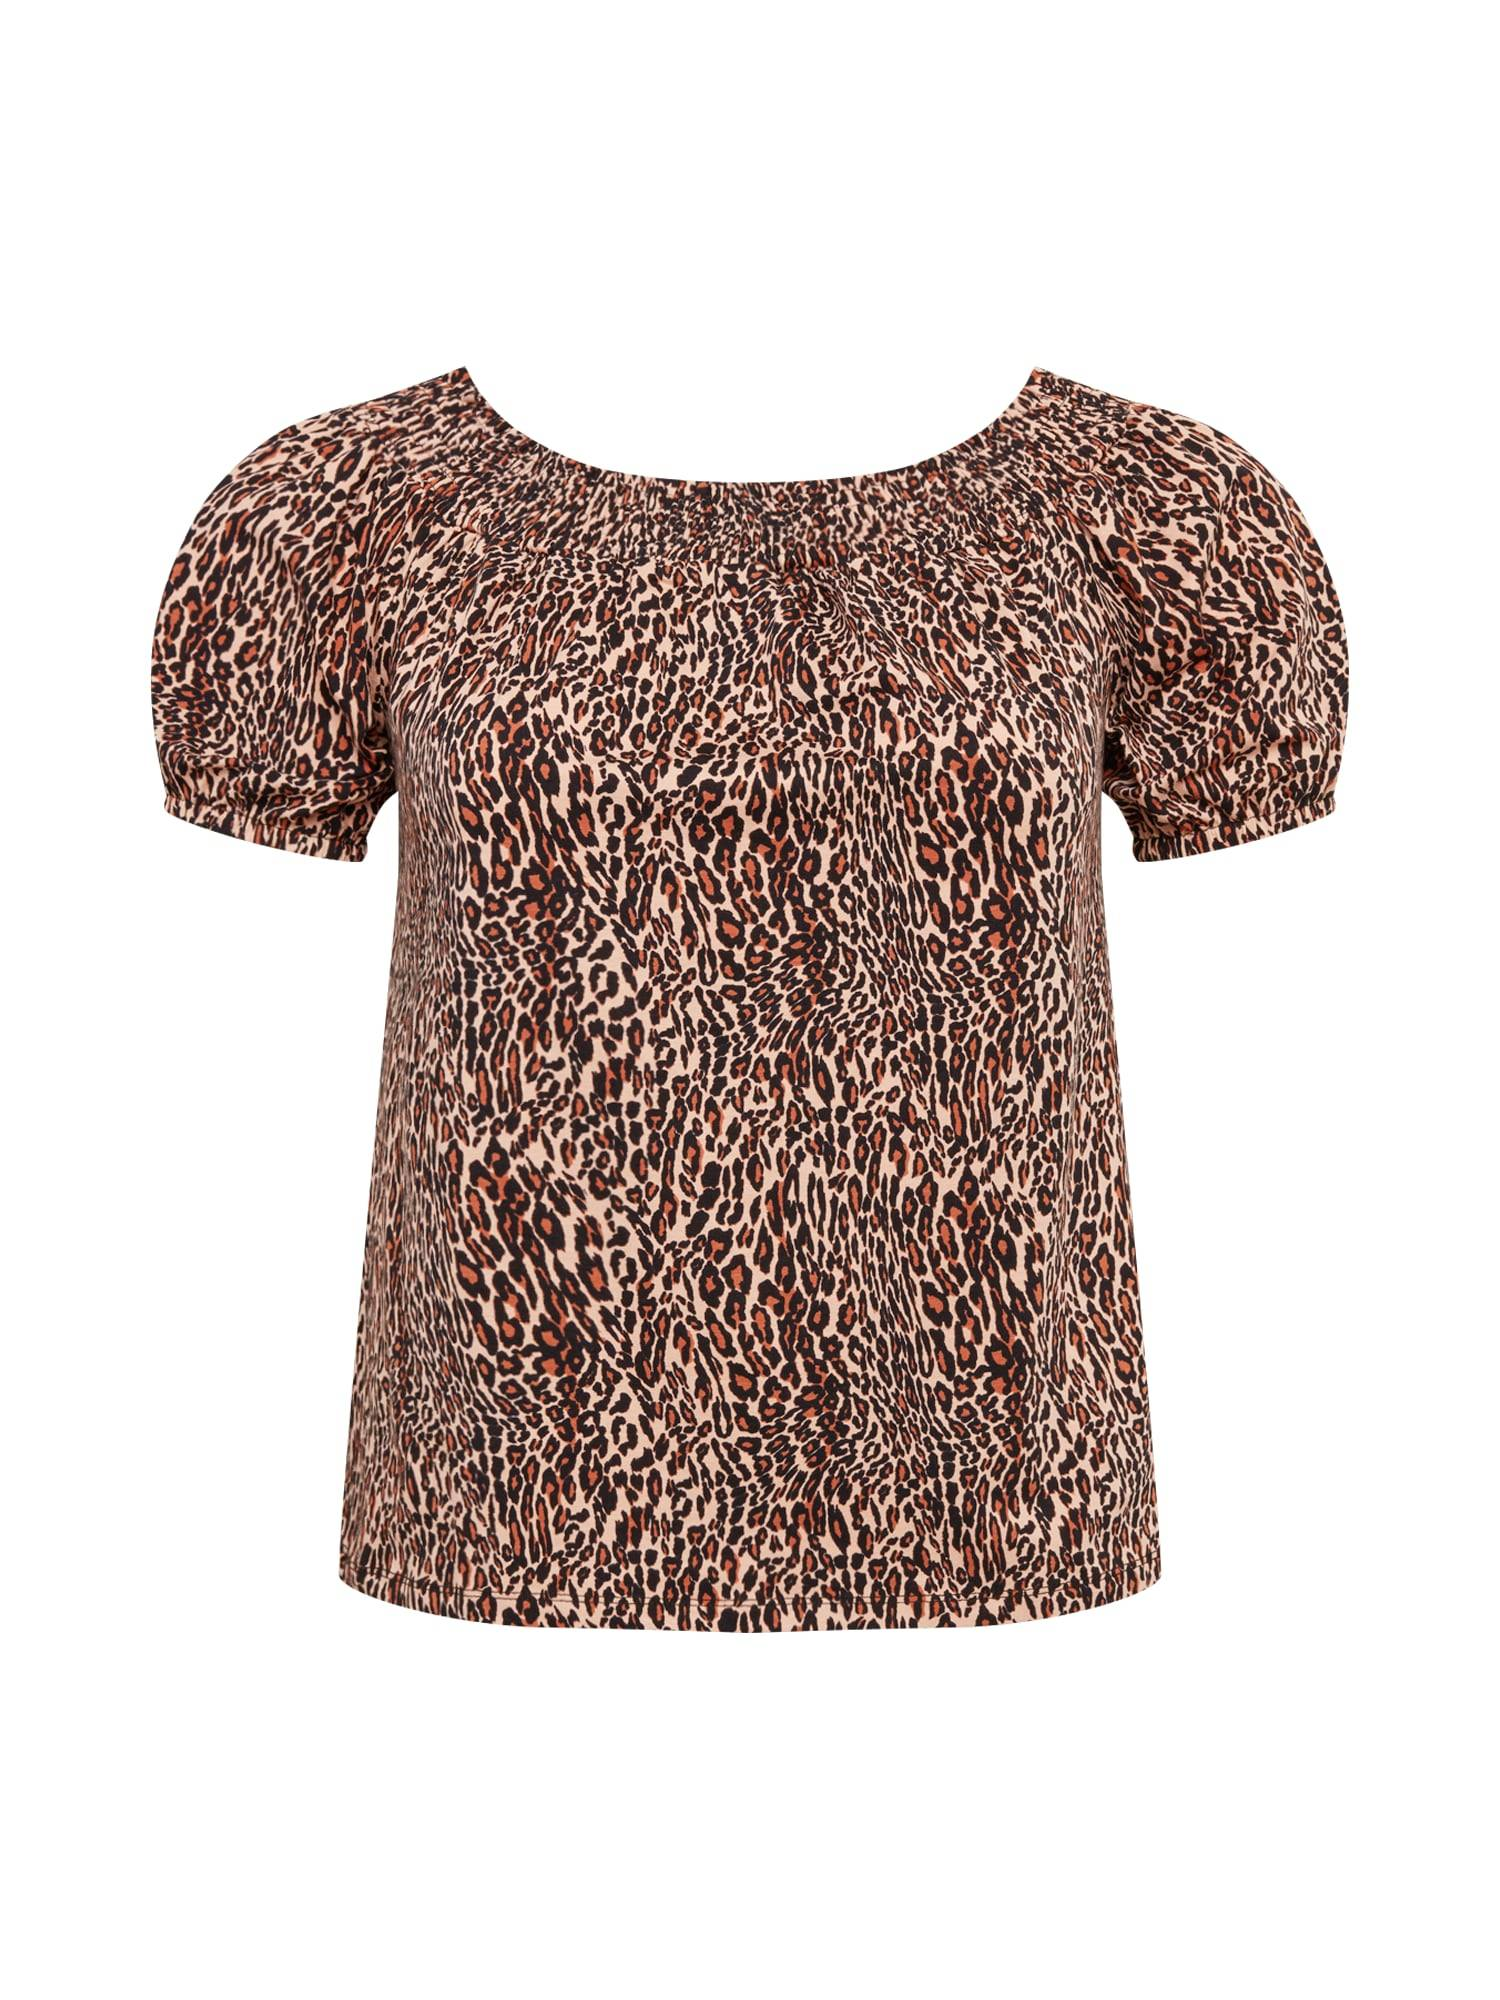 Dorothy Perkins Curve T-shirt  - Marron - Taille: 20 - female